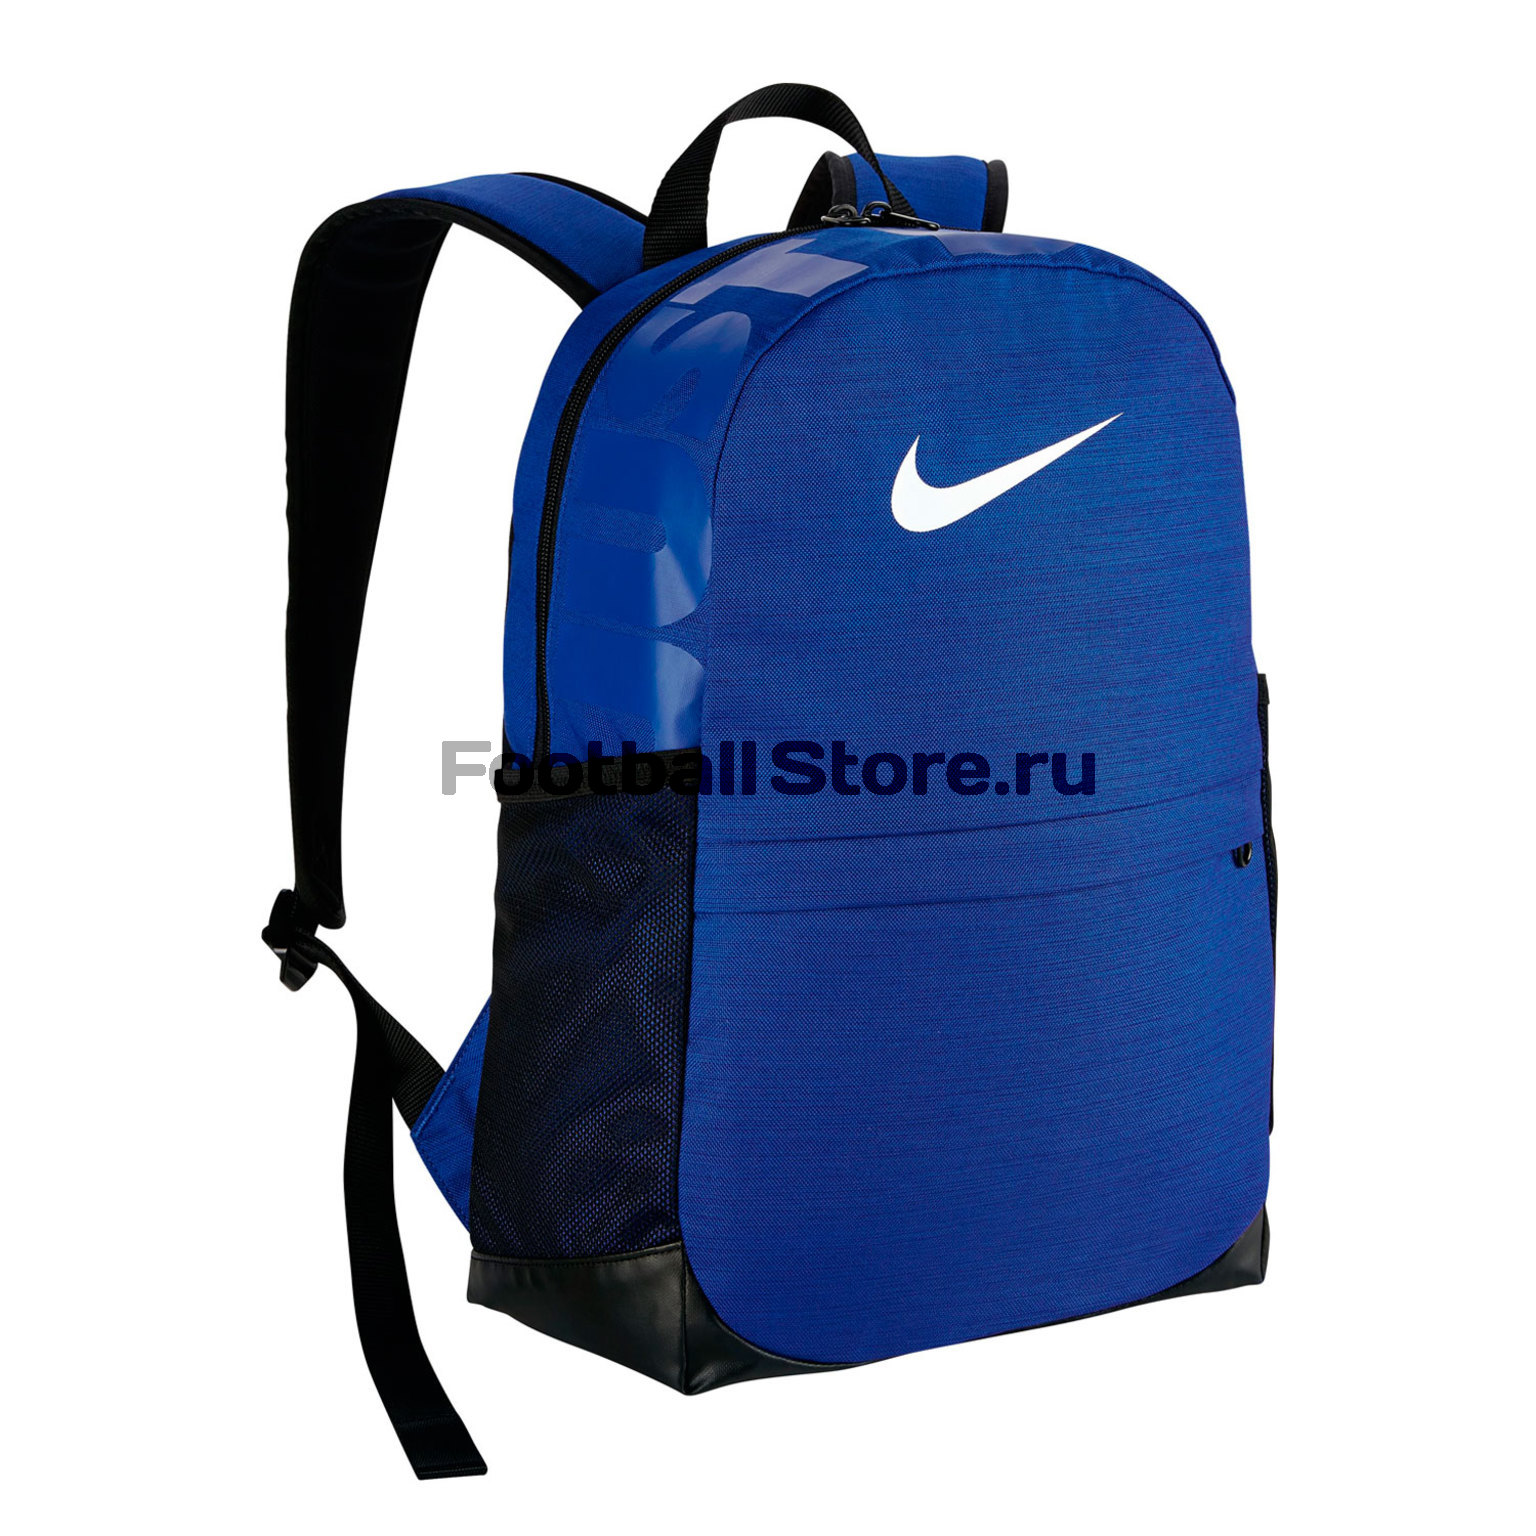 Рюкзак детский Nike Brasilia Backpack BA5473-480 рюкзак hp 17 3 omen backpack k5q03aa